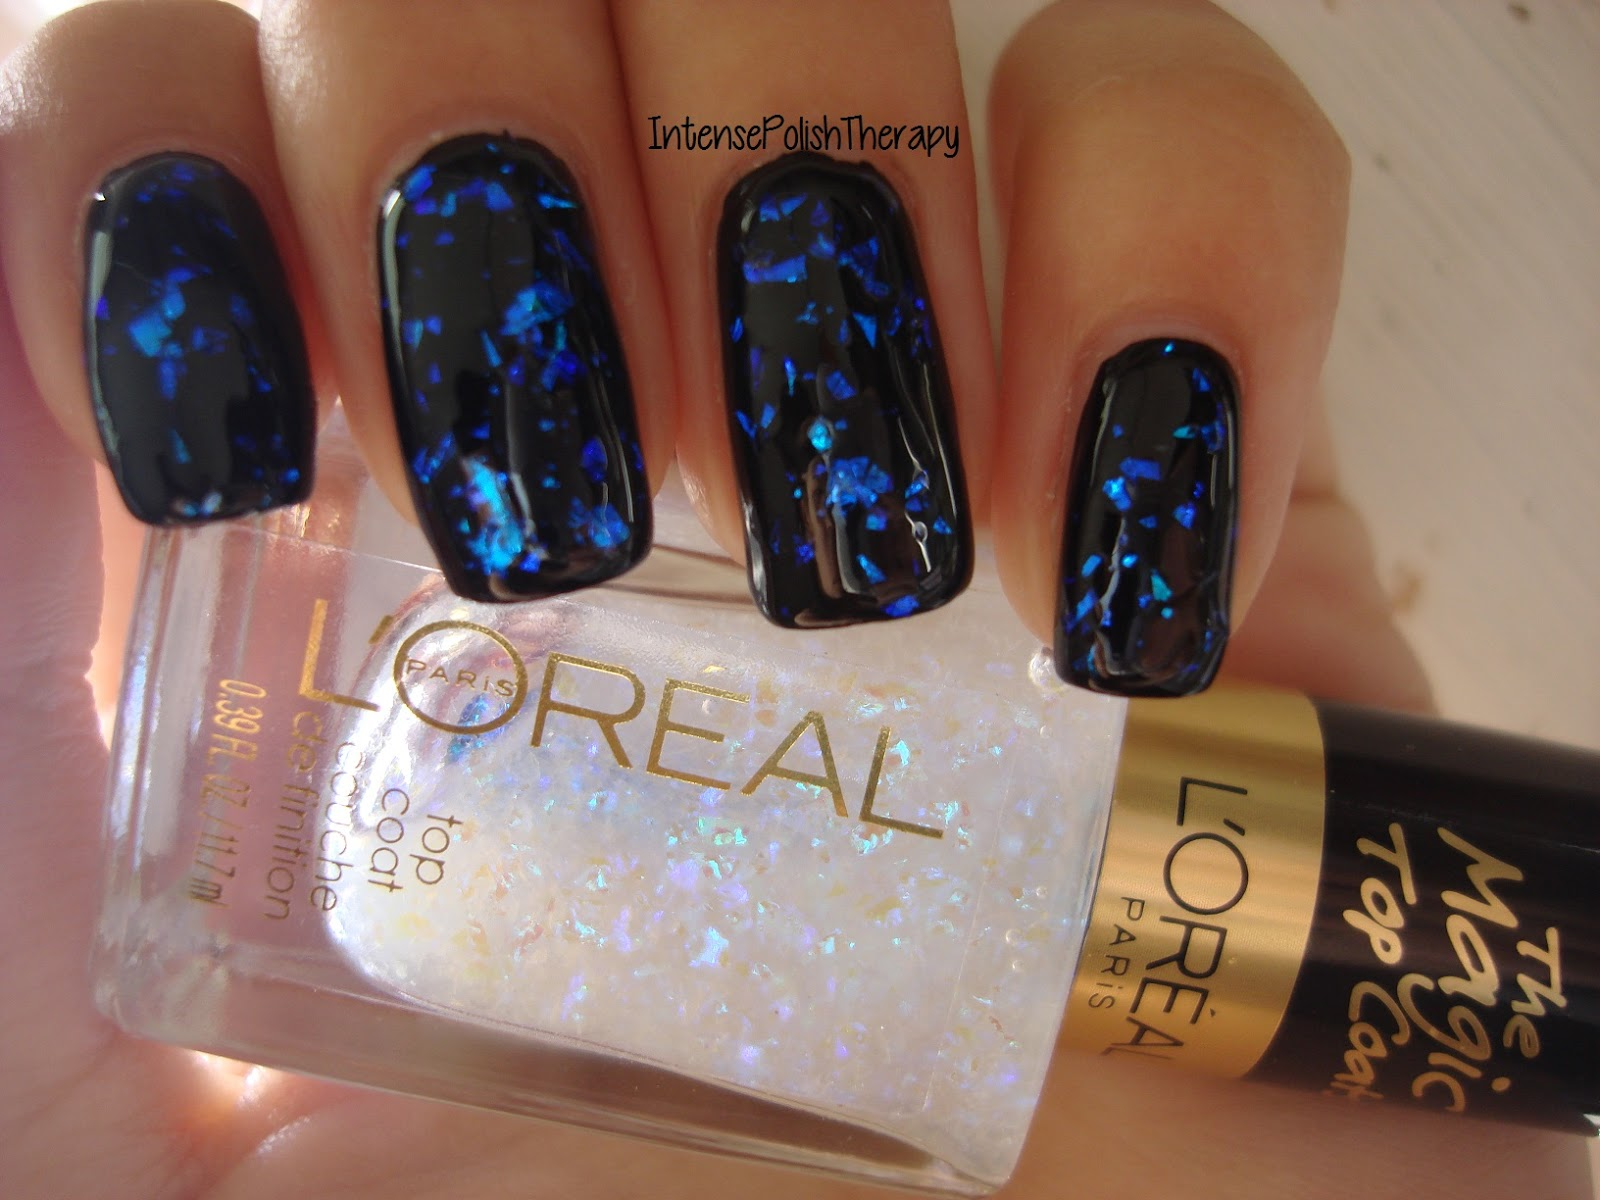 Loreal Holographic Nail Polish - Creative Touch